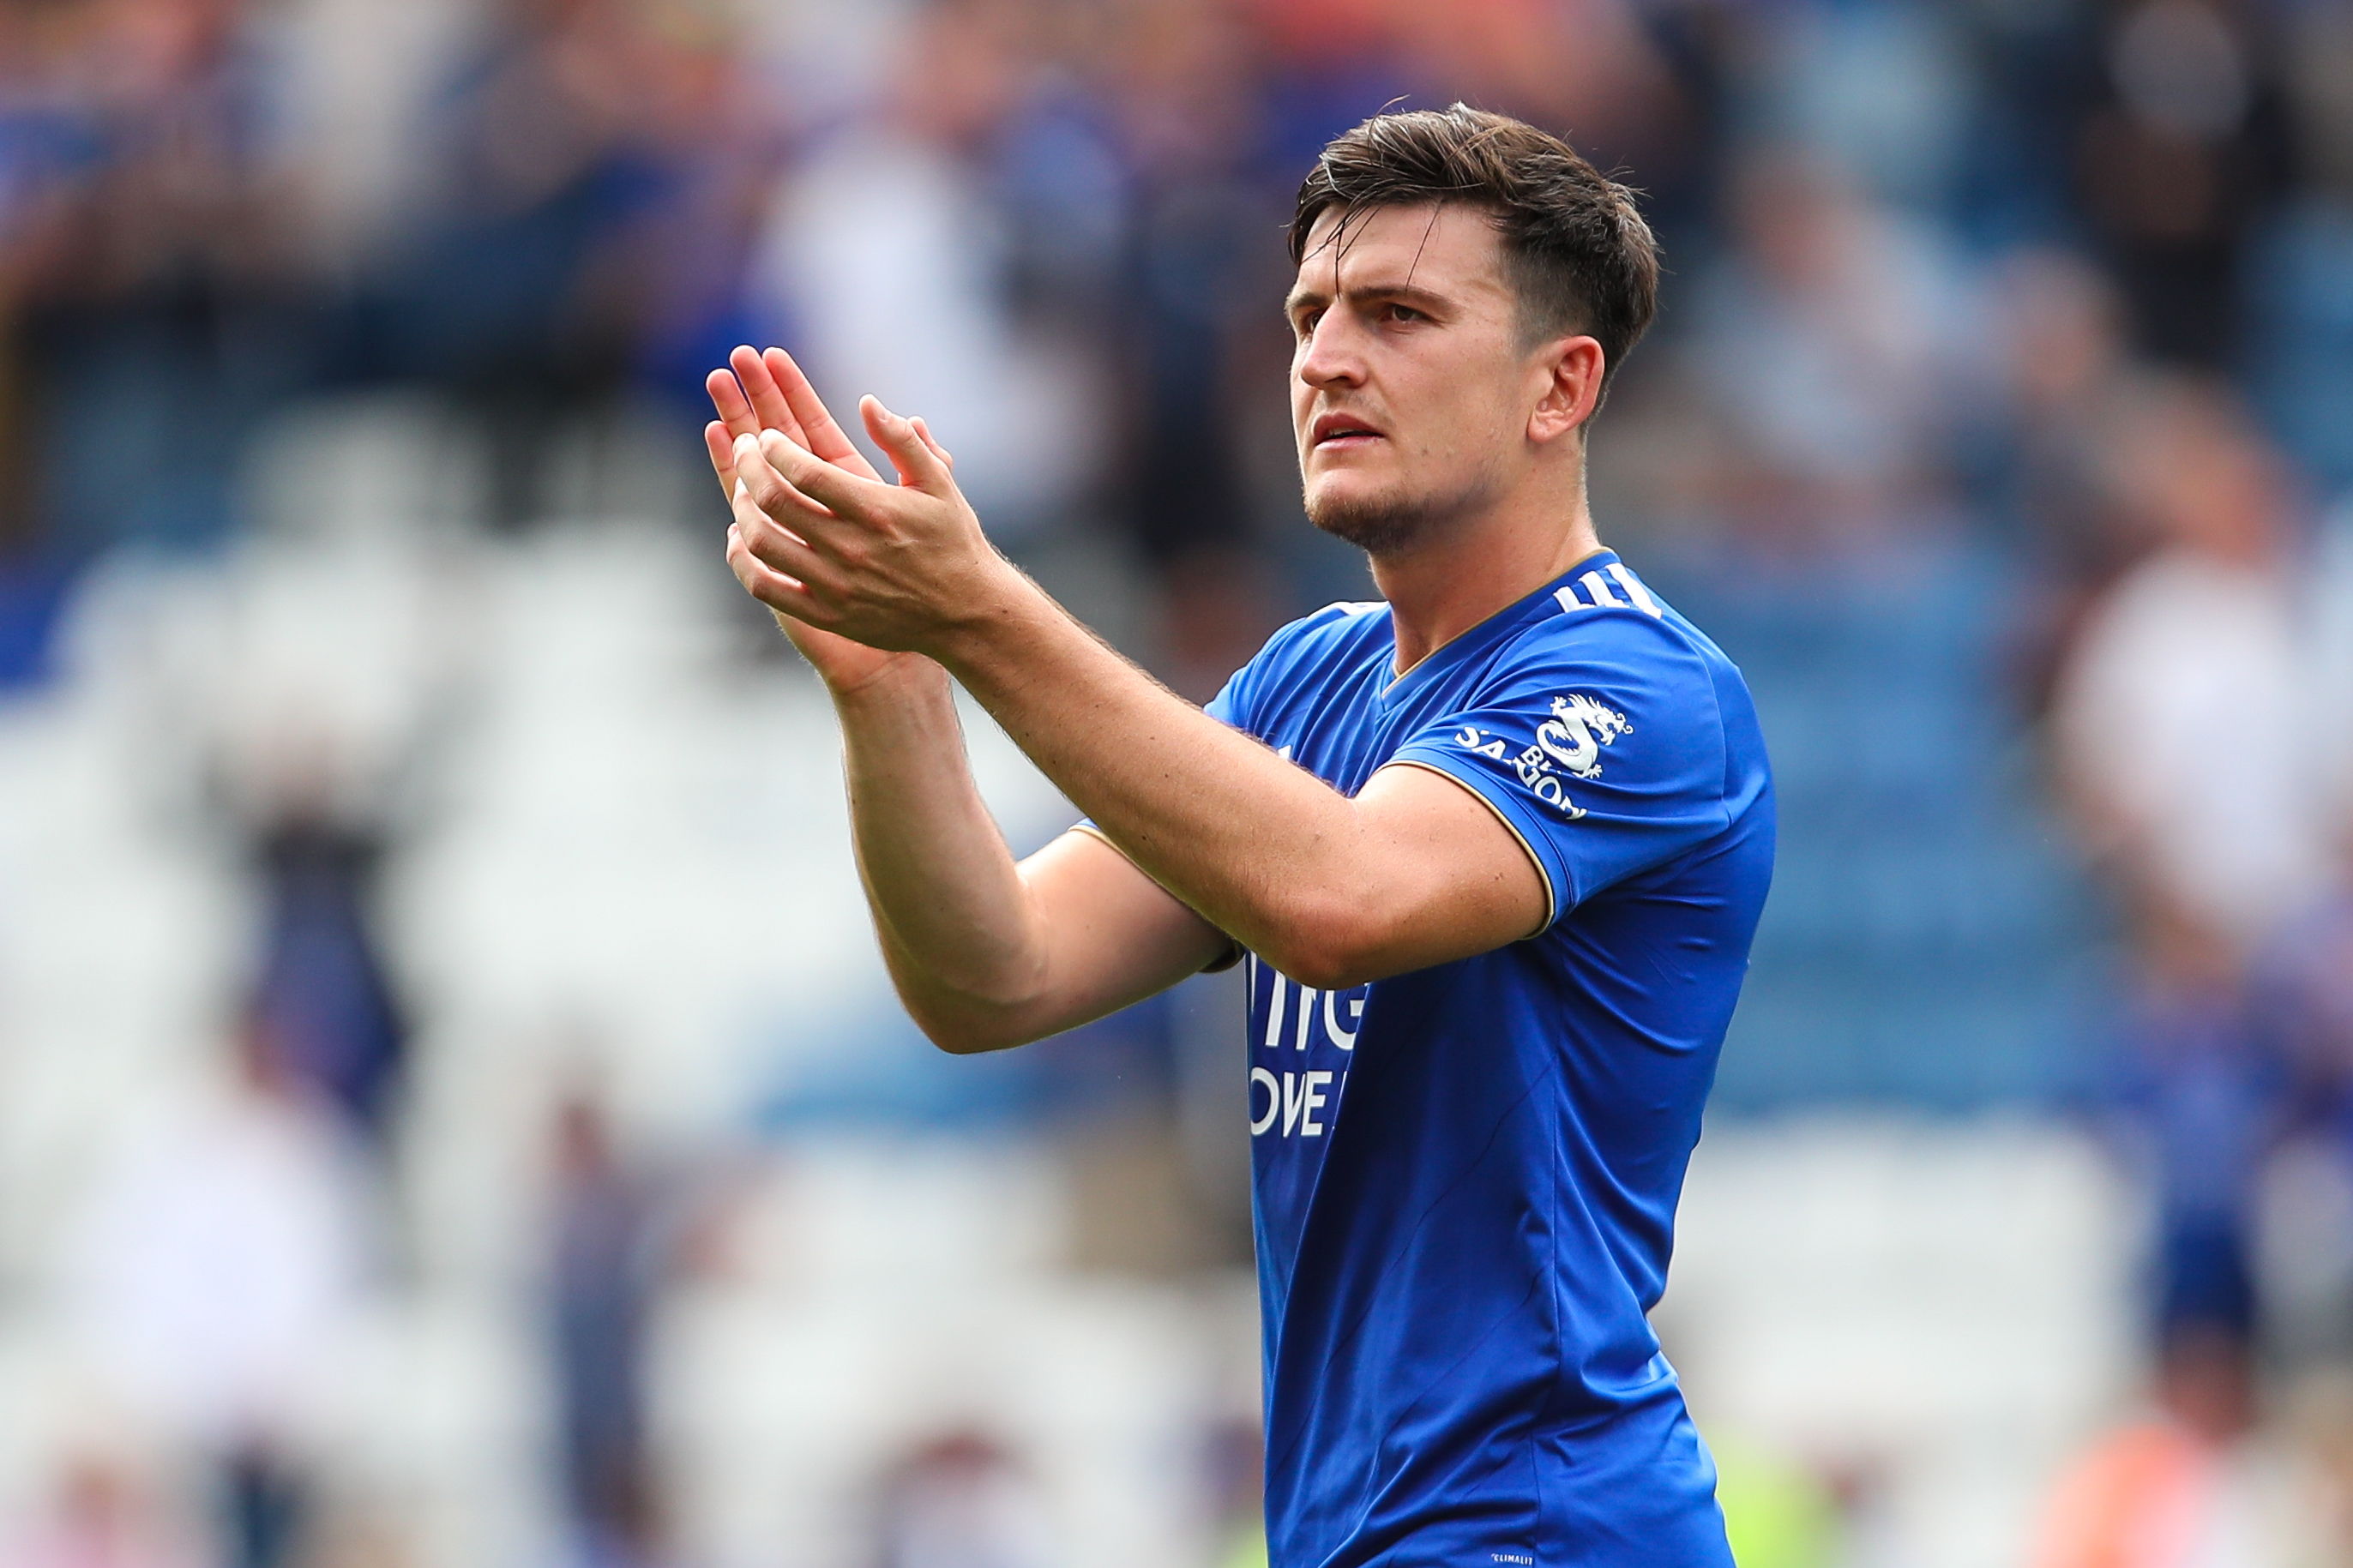 Harry Maguire reveals how close he came to Manchester United transfer